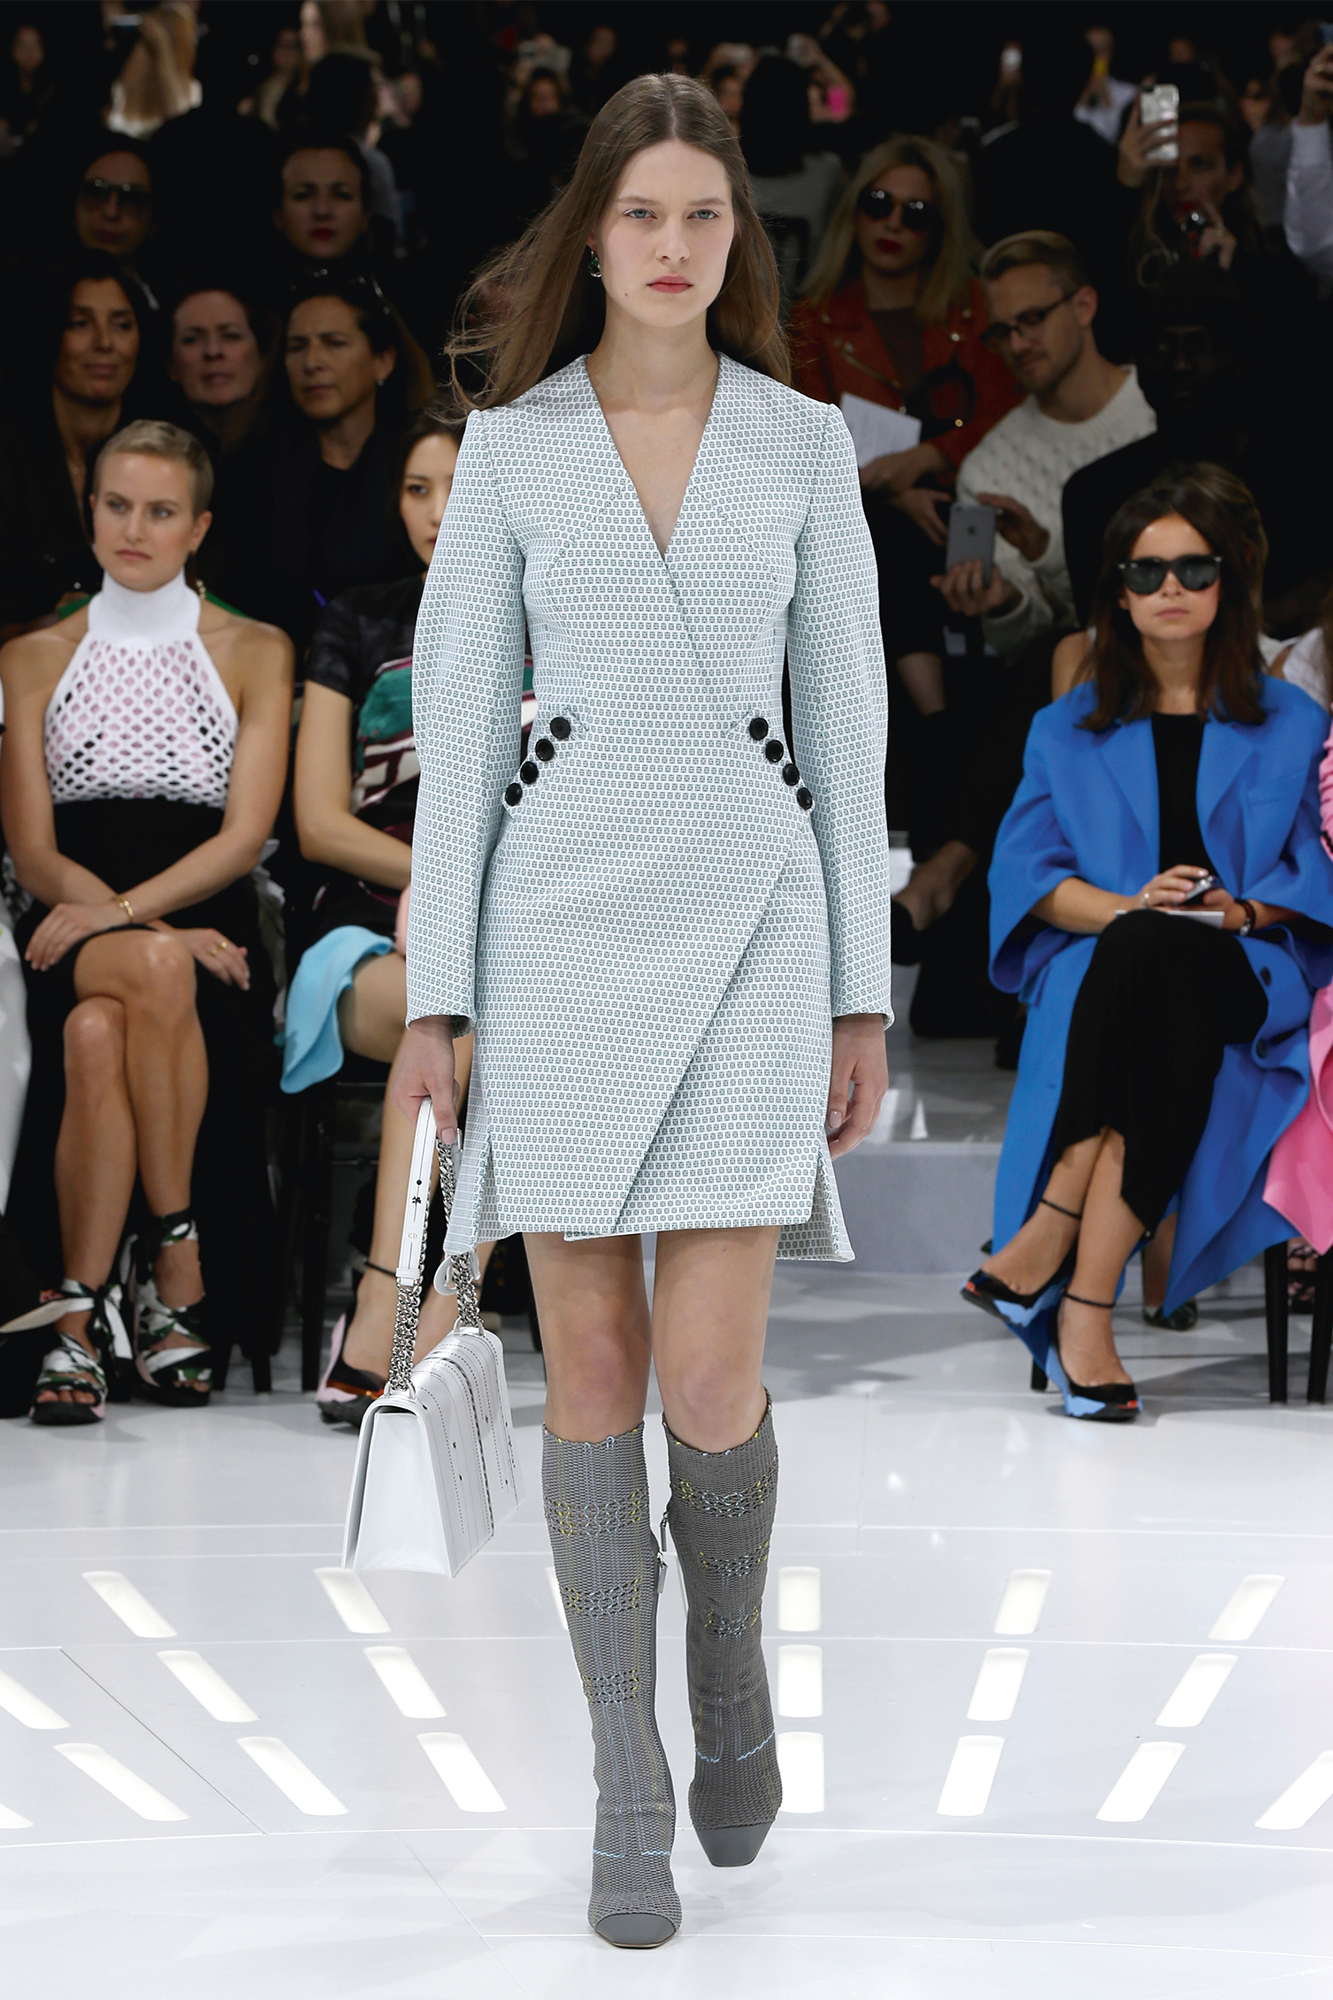 New Western Fashion Christian Dior Ready To Wear Dresses Spring Summer Collection 2015 (25)